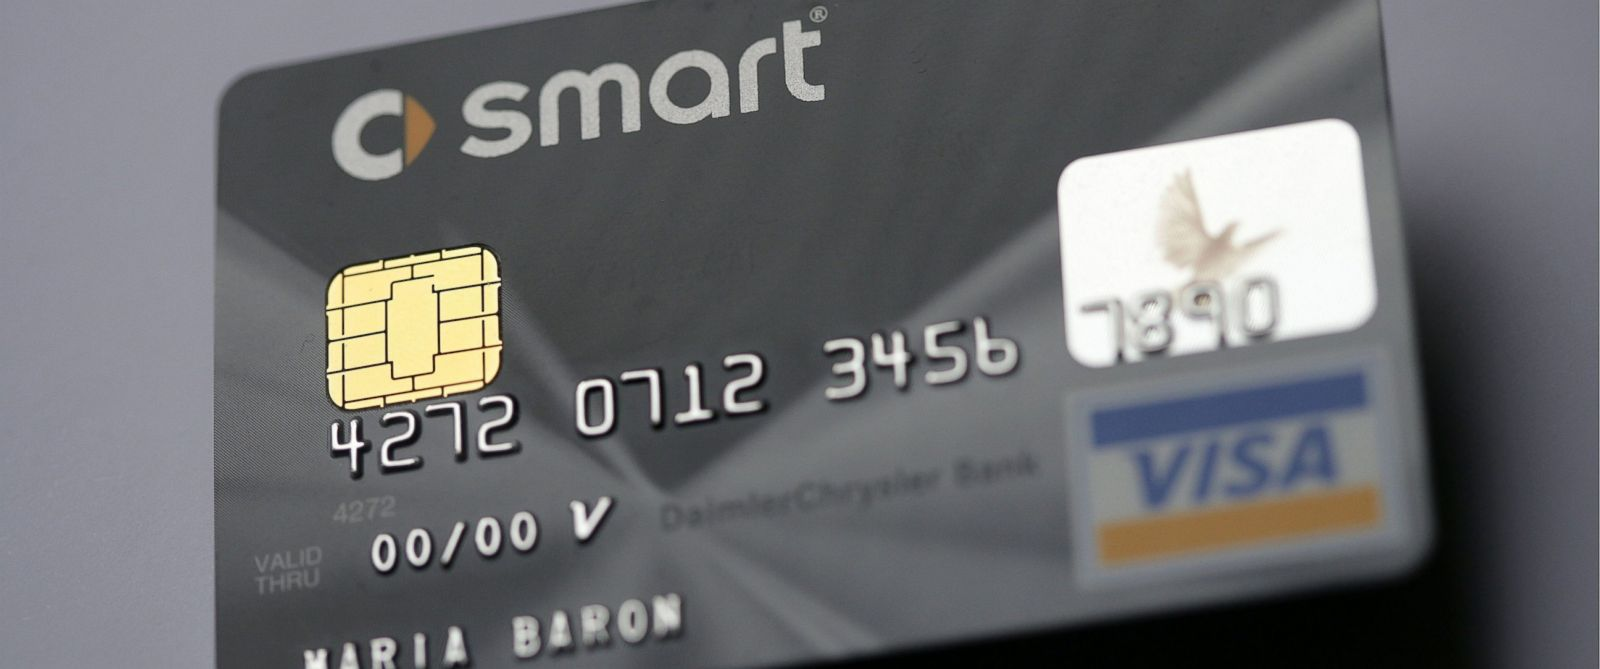 Those New Credit Card Chips Known as EMV Won't Defeat the Data ...